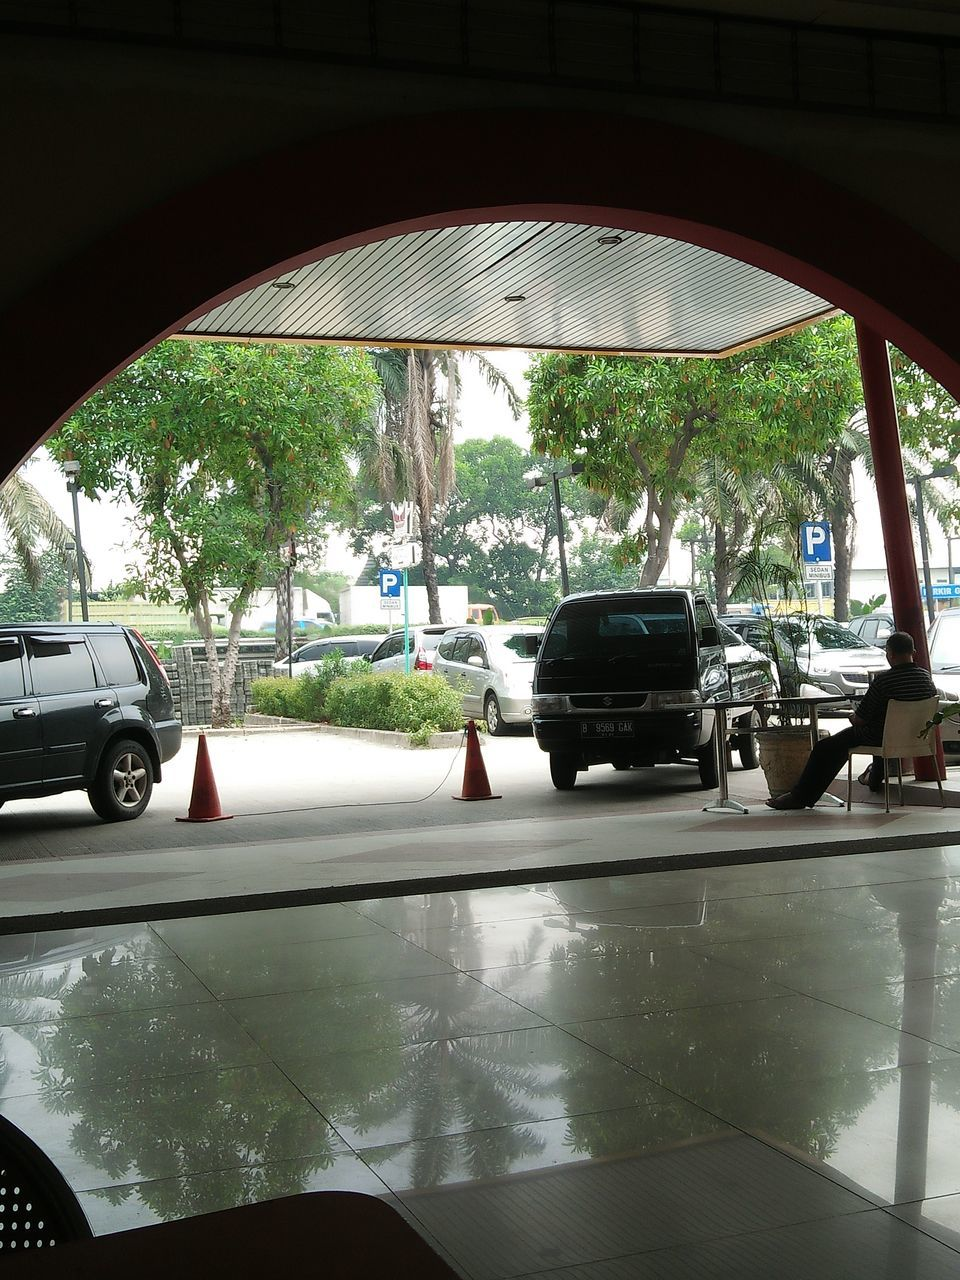 car, transportation, land vehicle, mode of transport, car interior, day, wet, windshield, window, travel, car point of view, stationary, tree, road, road trip, water, no people, indoors, car wash, under